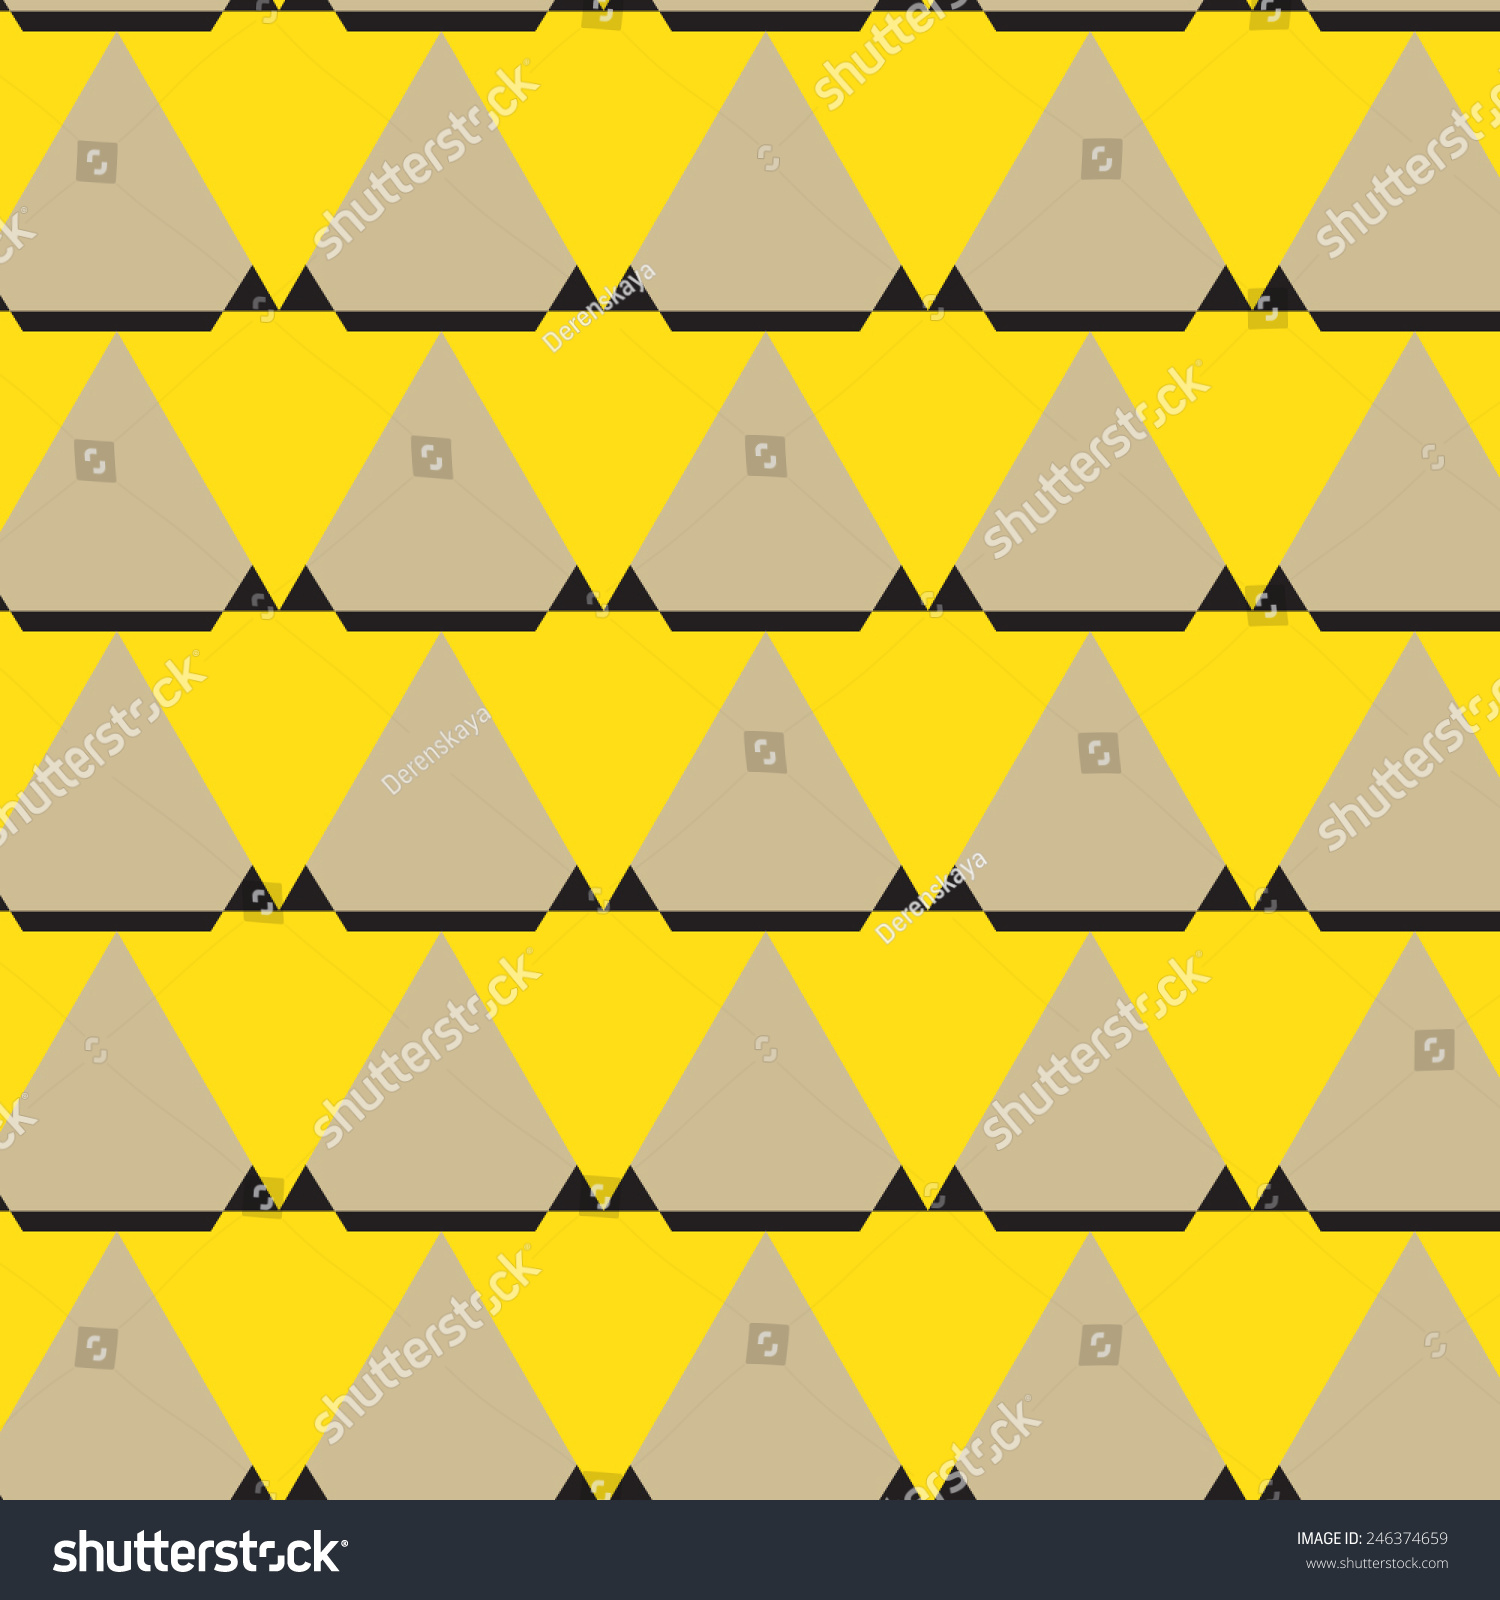 stock vector geometric background - photo #26